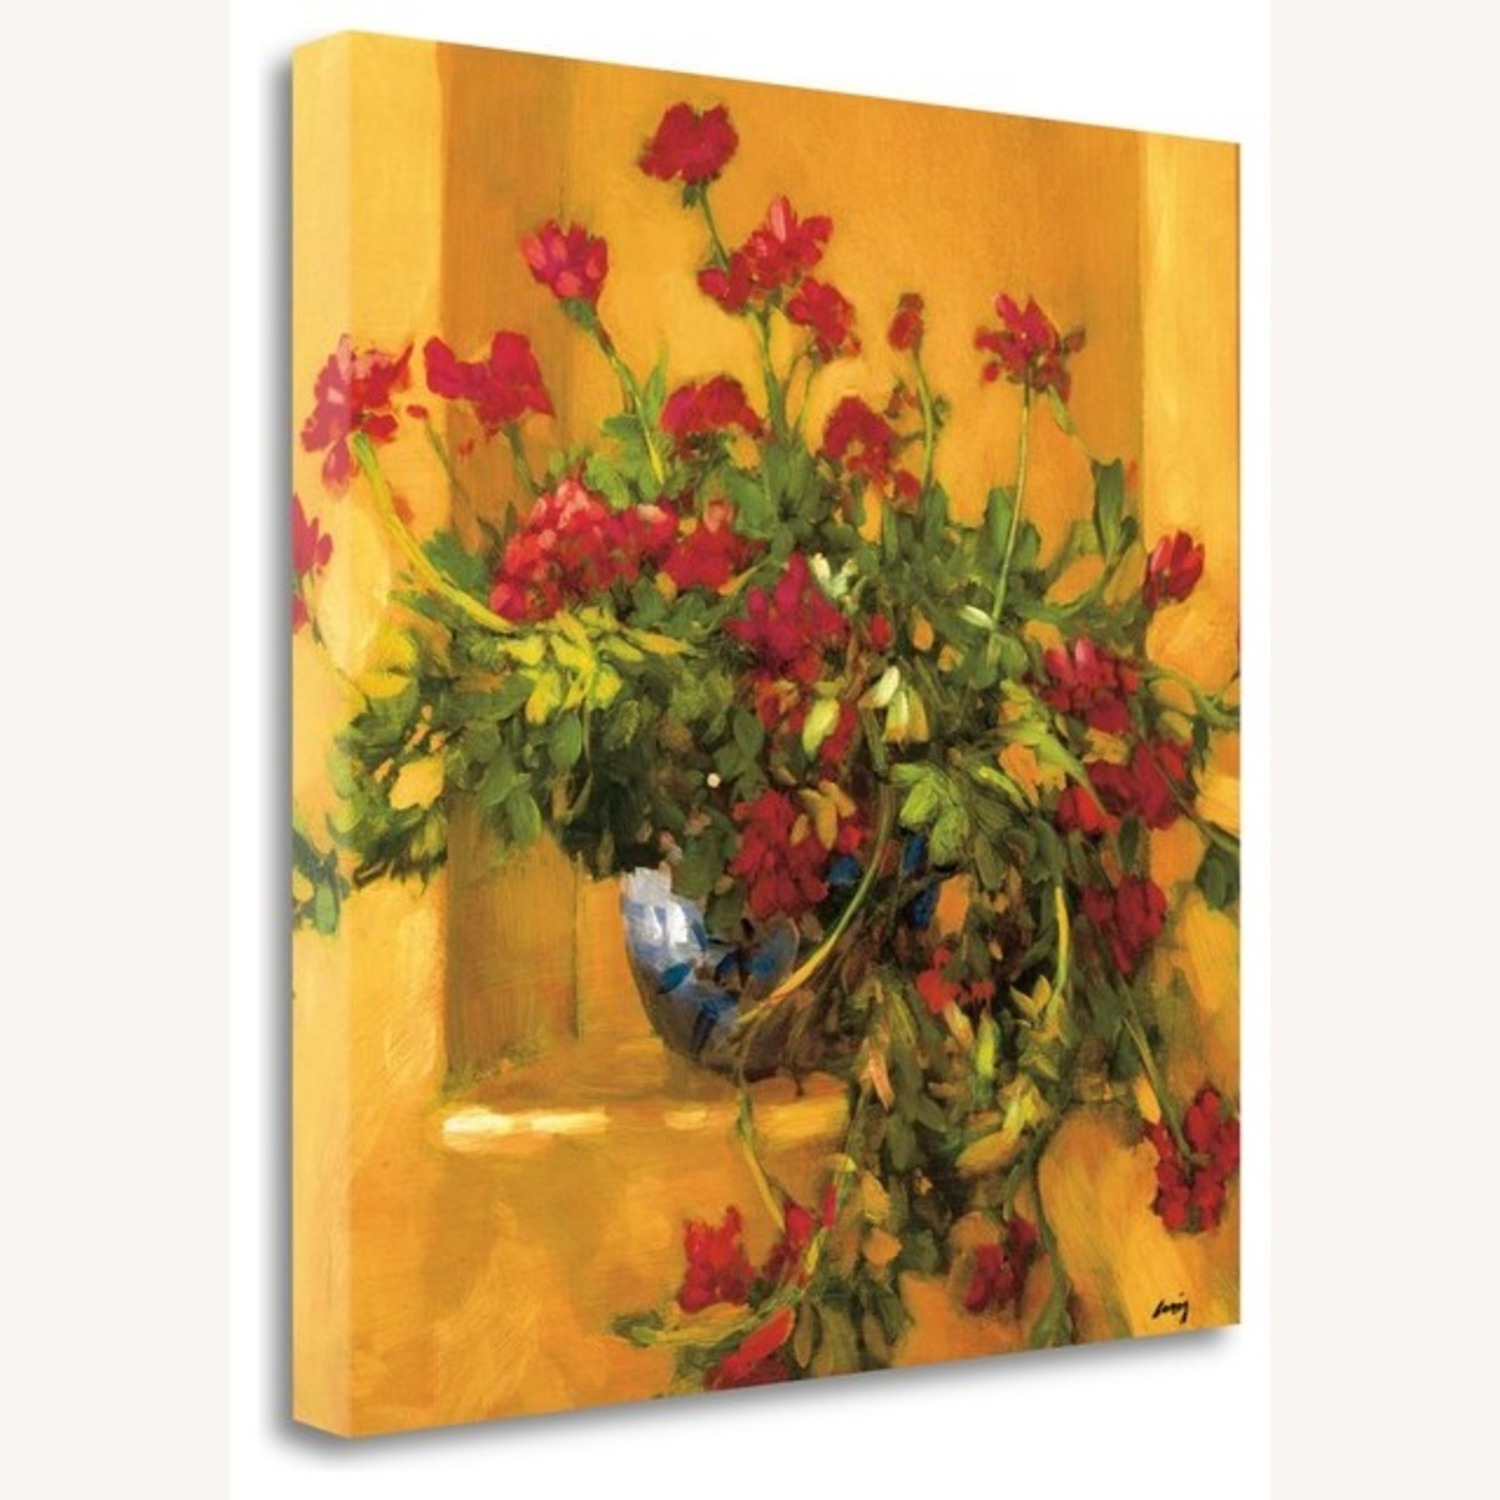 Crate & Barrel Ivy Geraniums by Philip Craig - image-1